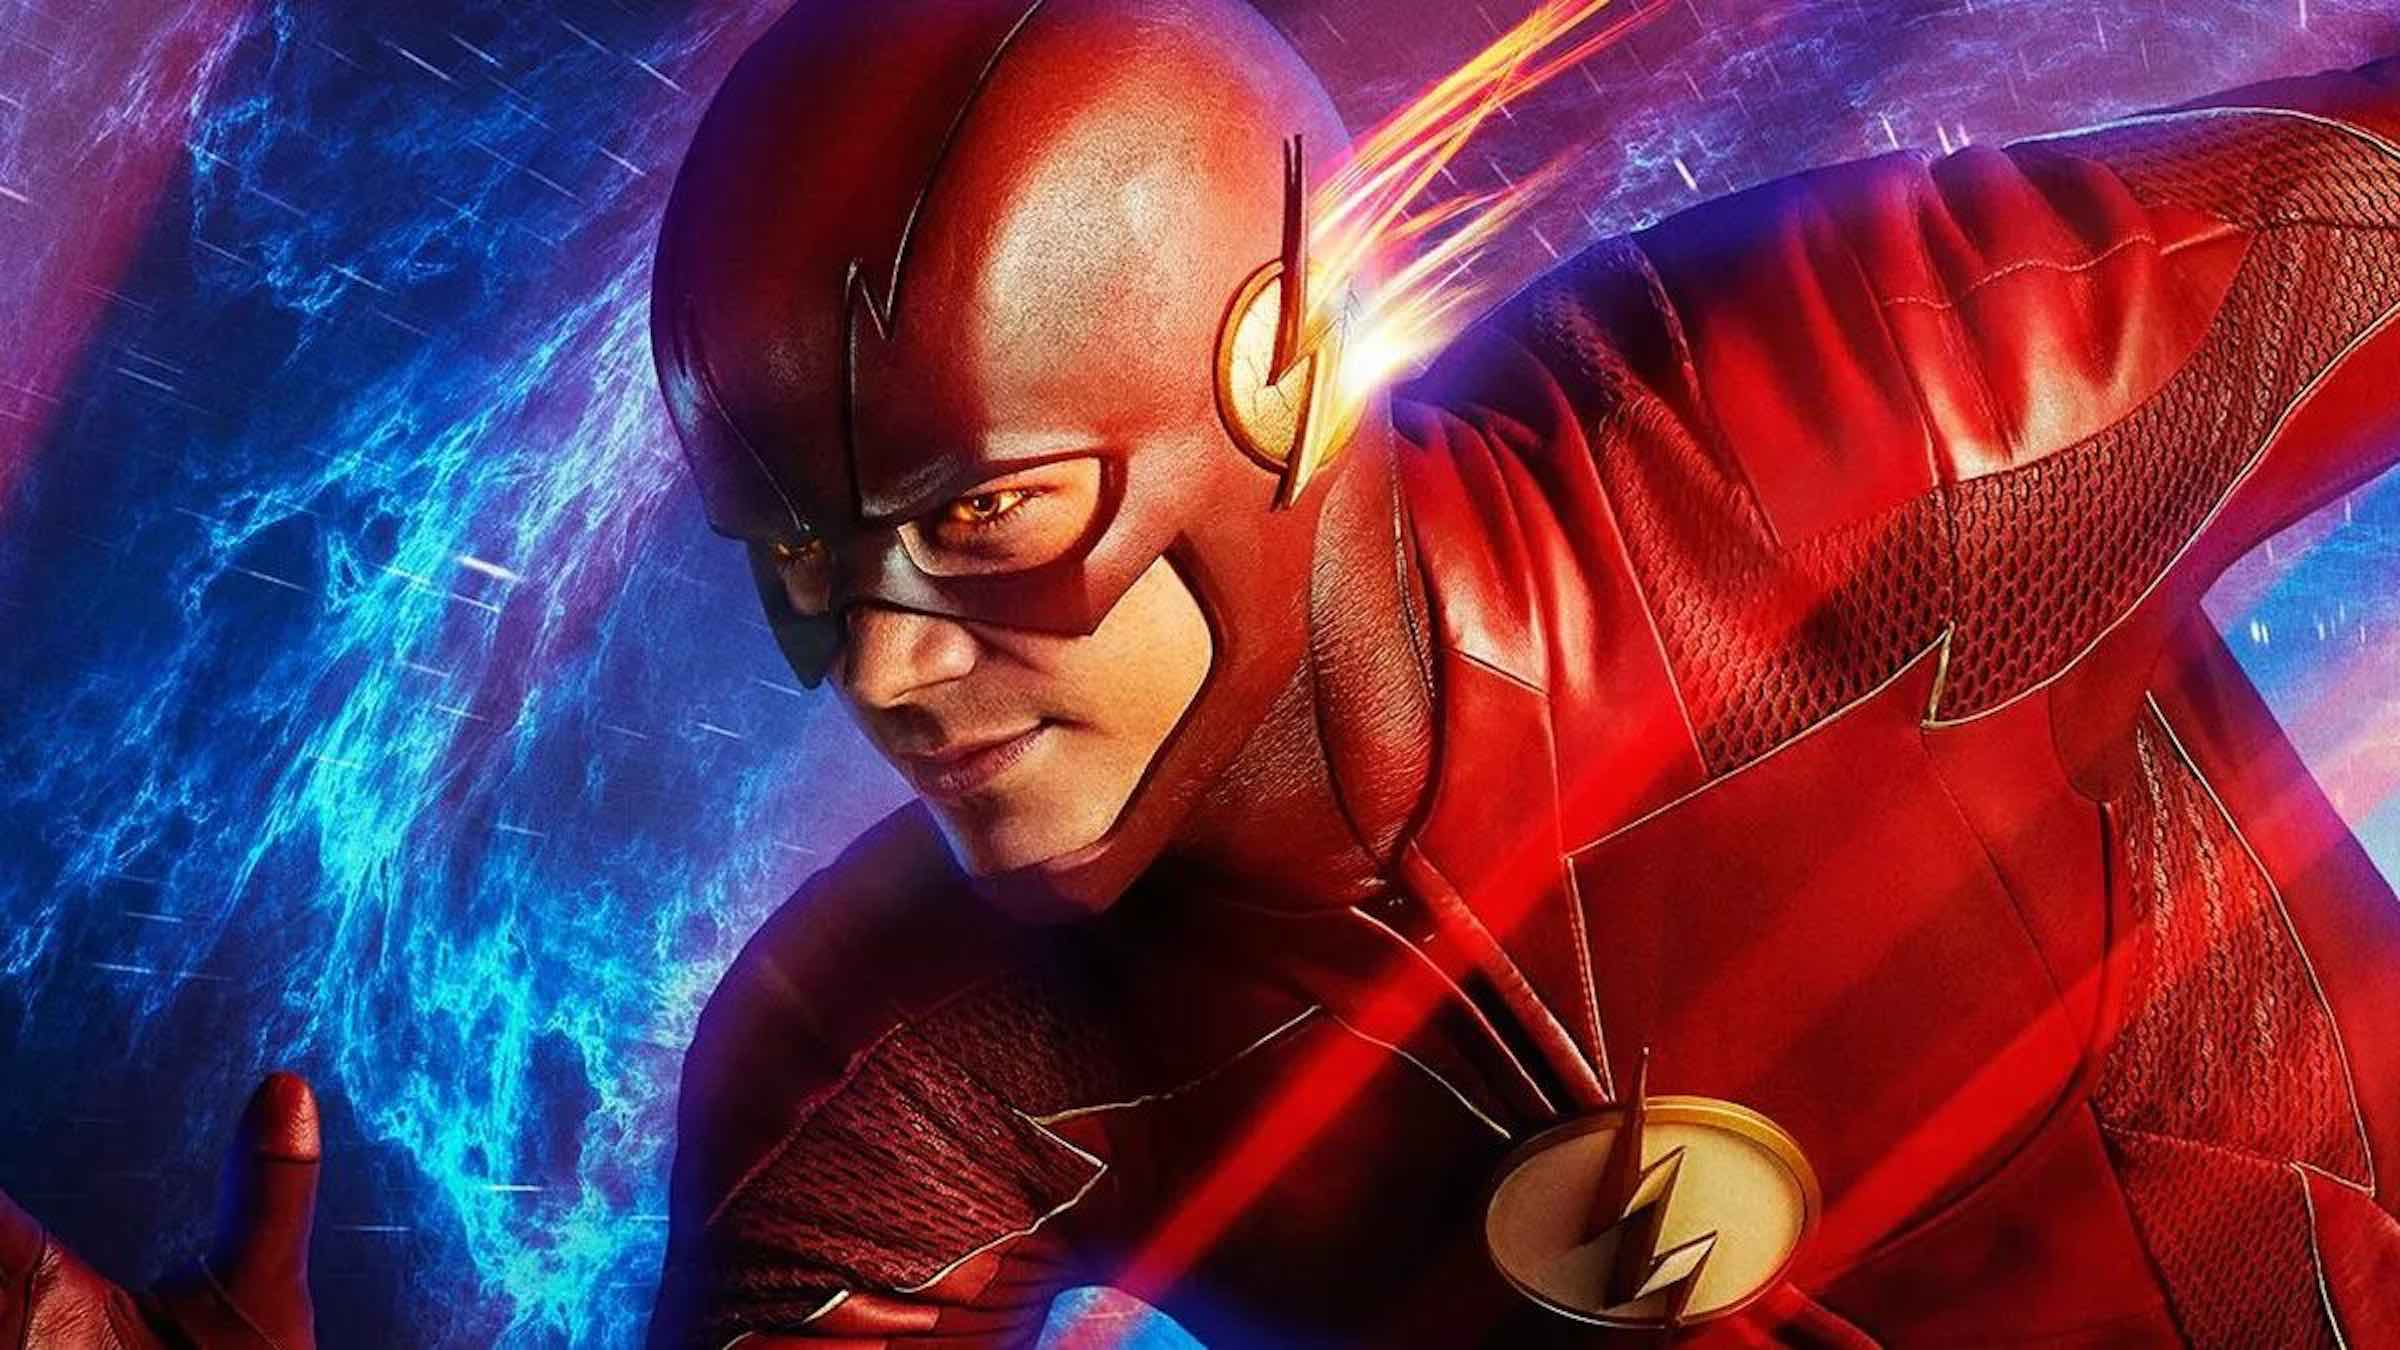 The CW's 'The Flash' is back: Here's what to expect – Film Daily